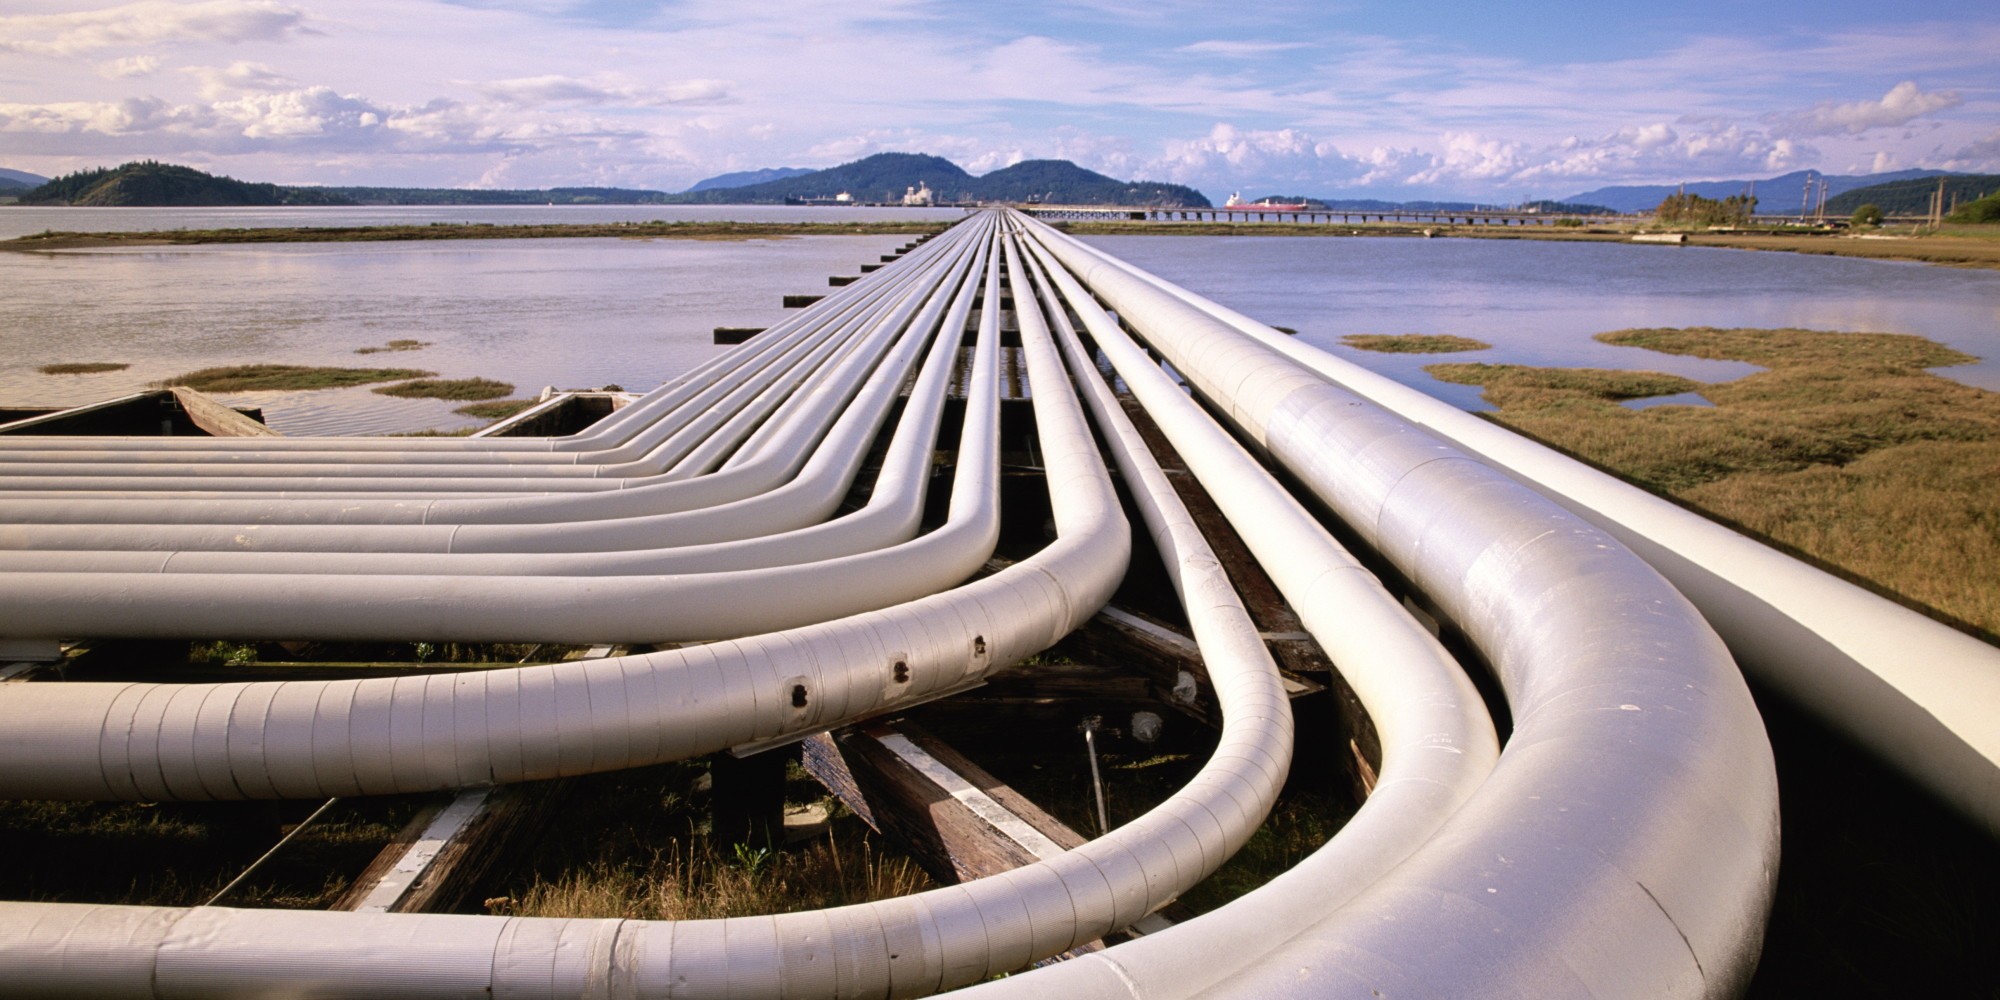 PETROLEUM PIPES AND OIL TANKER AT PIER